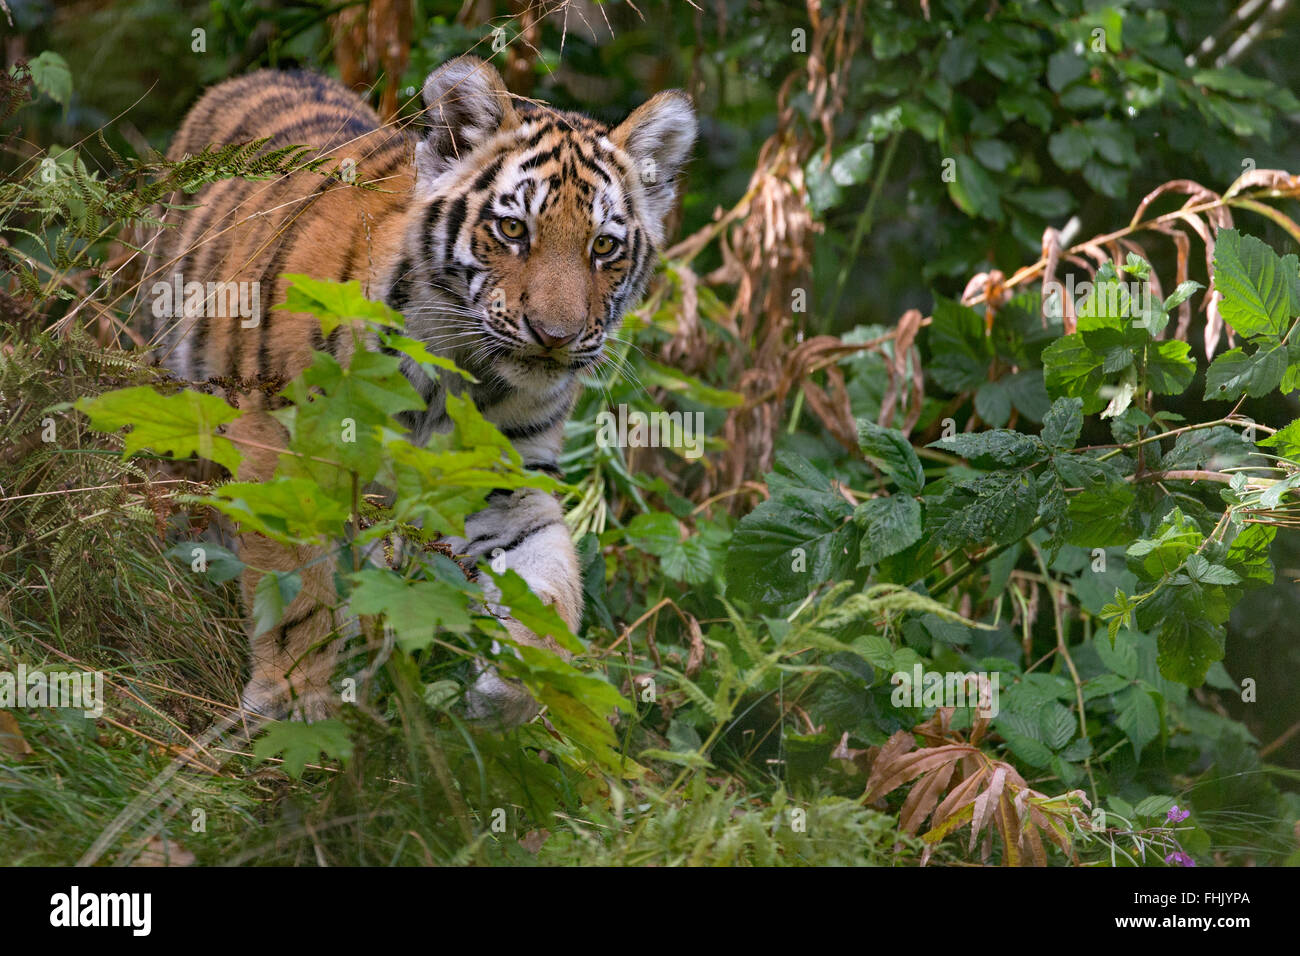 Amur tiger cub, 4 months old - Stock Image